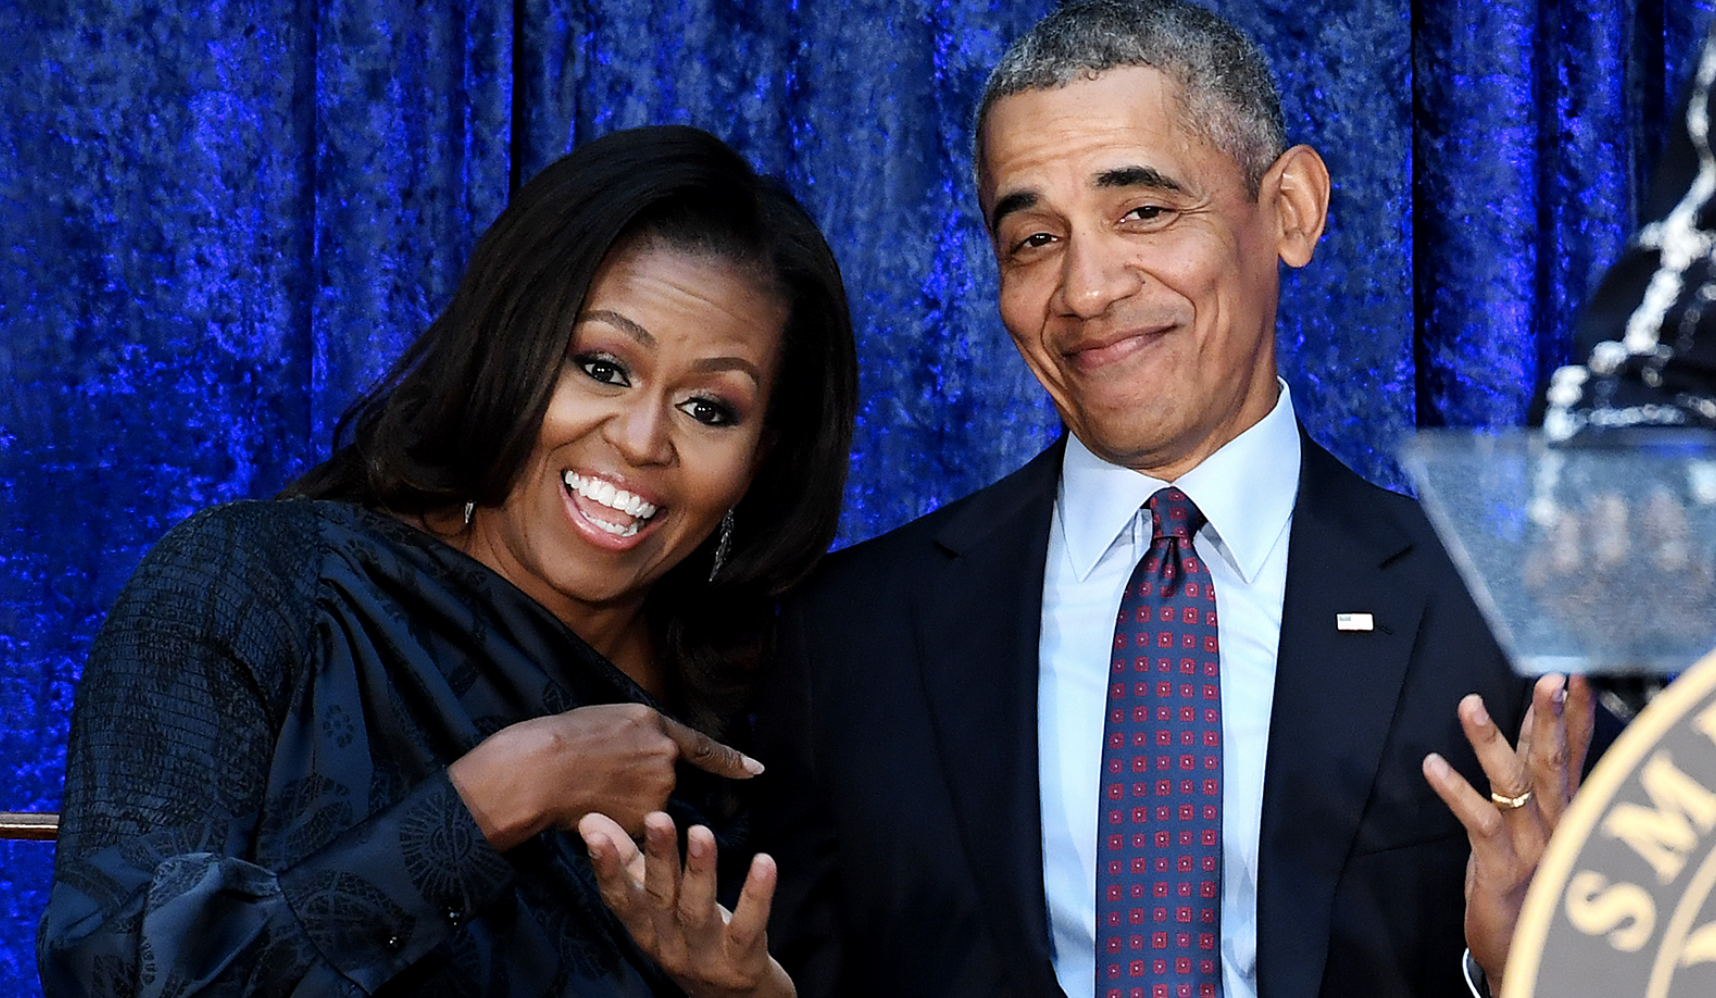 The Obamas dominate as the most admired people in the U.S.